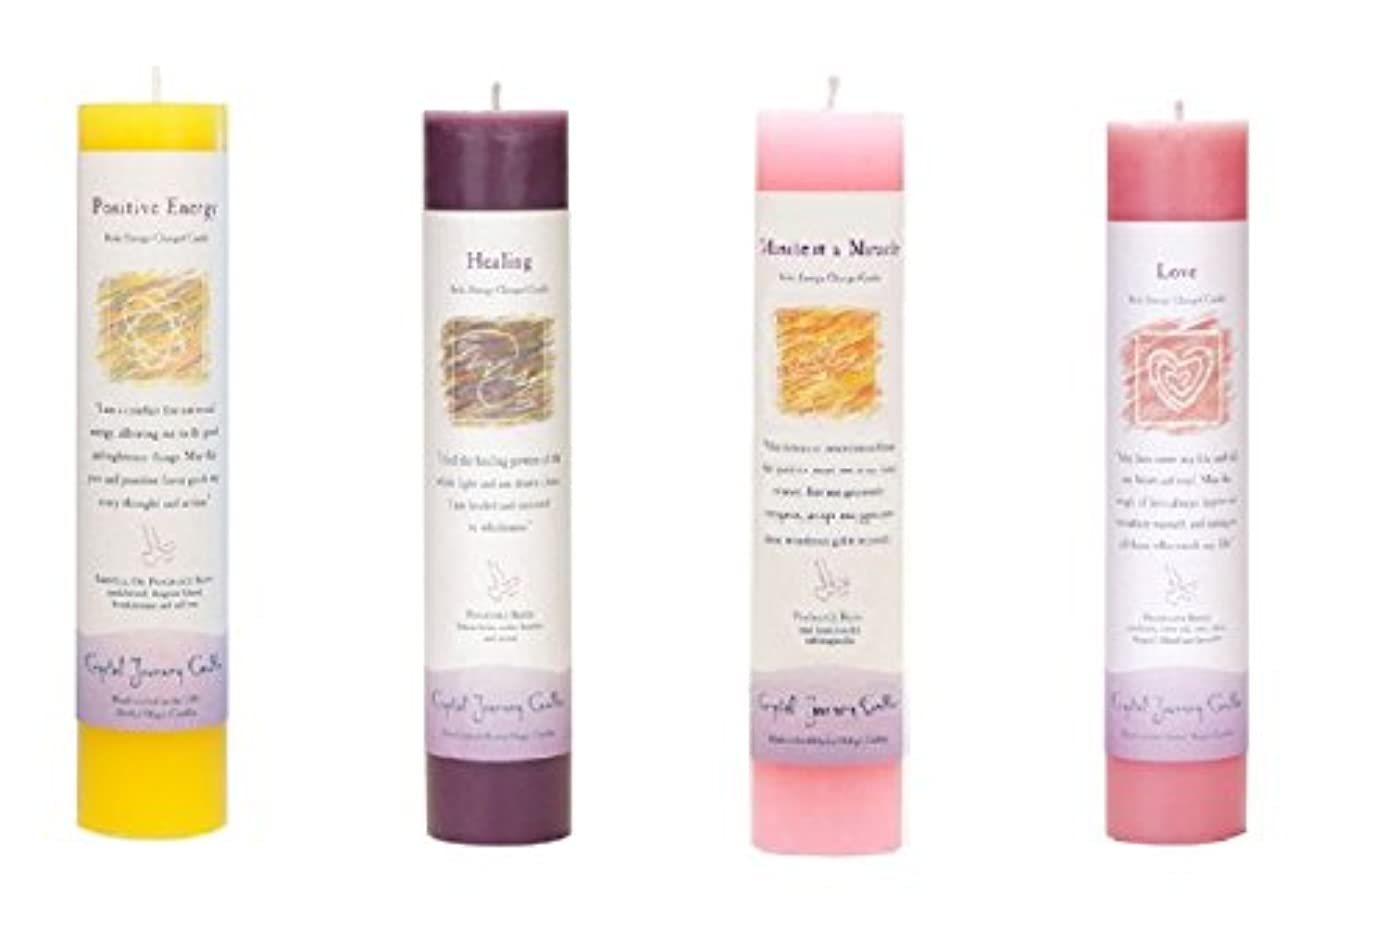 時々時々まだら化粧(Positive Energy, Healing, Manifest a Miracle, Love) - Crystal Journey Reiki Charged Herbal Magic Pillar Candle Bundle (Positive Energy, Healing, Manifest a Miracle, Love)